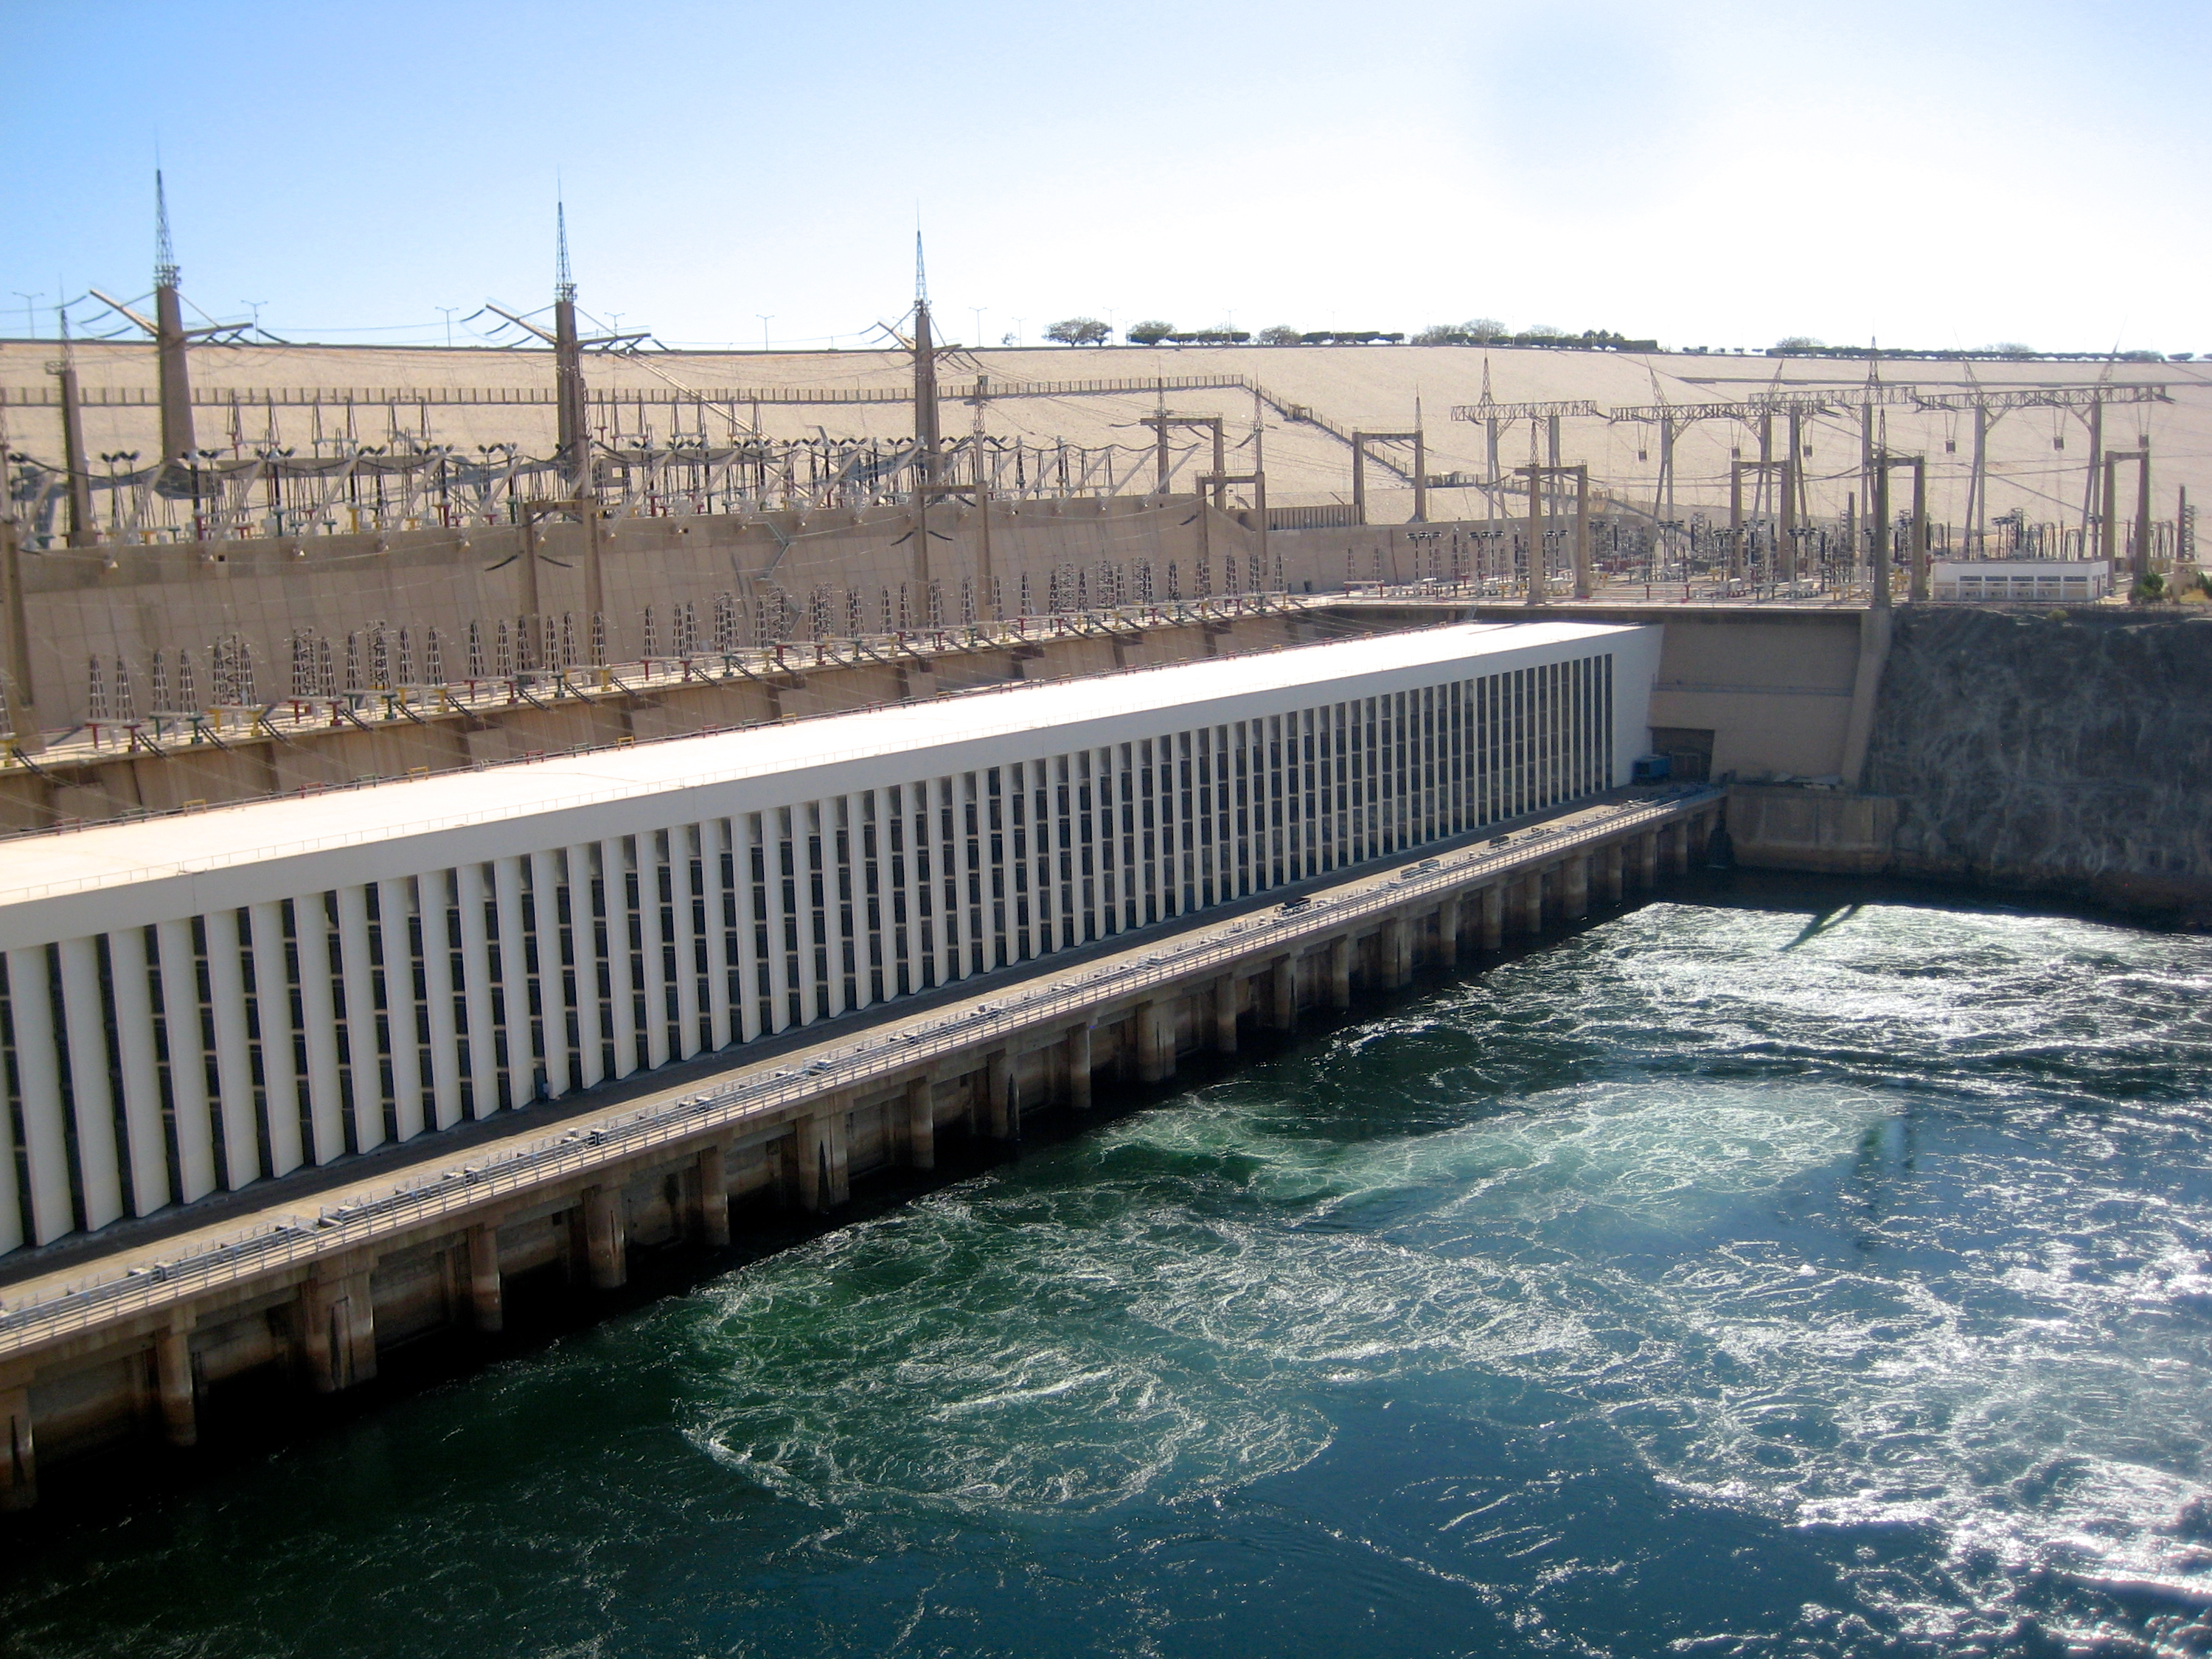 Aswan Dam Aswan, 8 Must See Places in Egypt on a Nile River Cruise